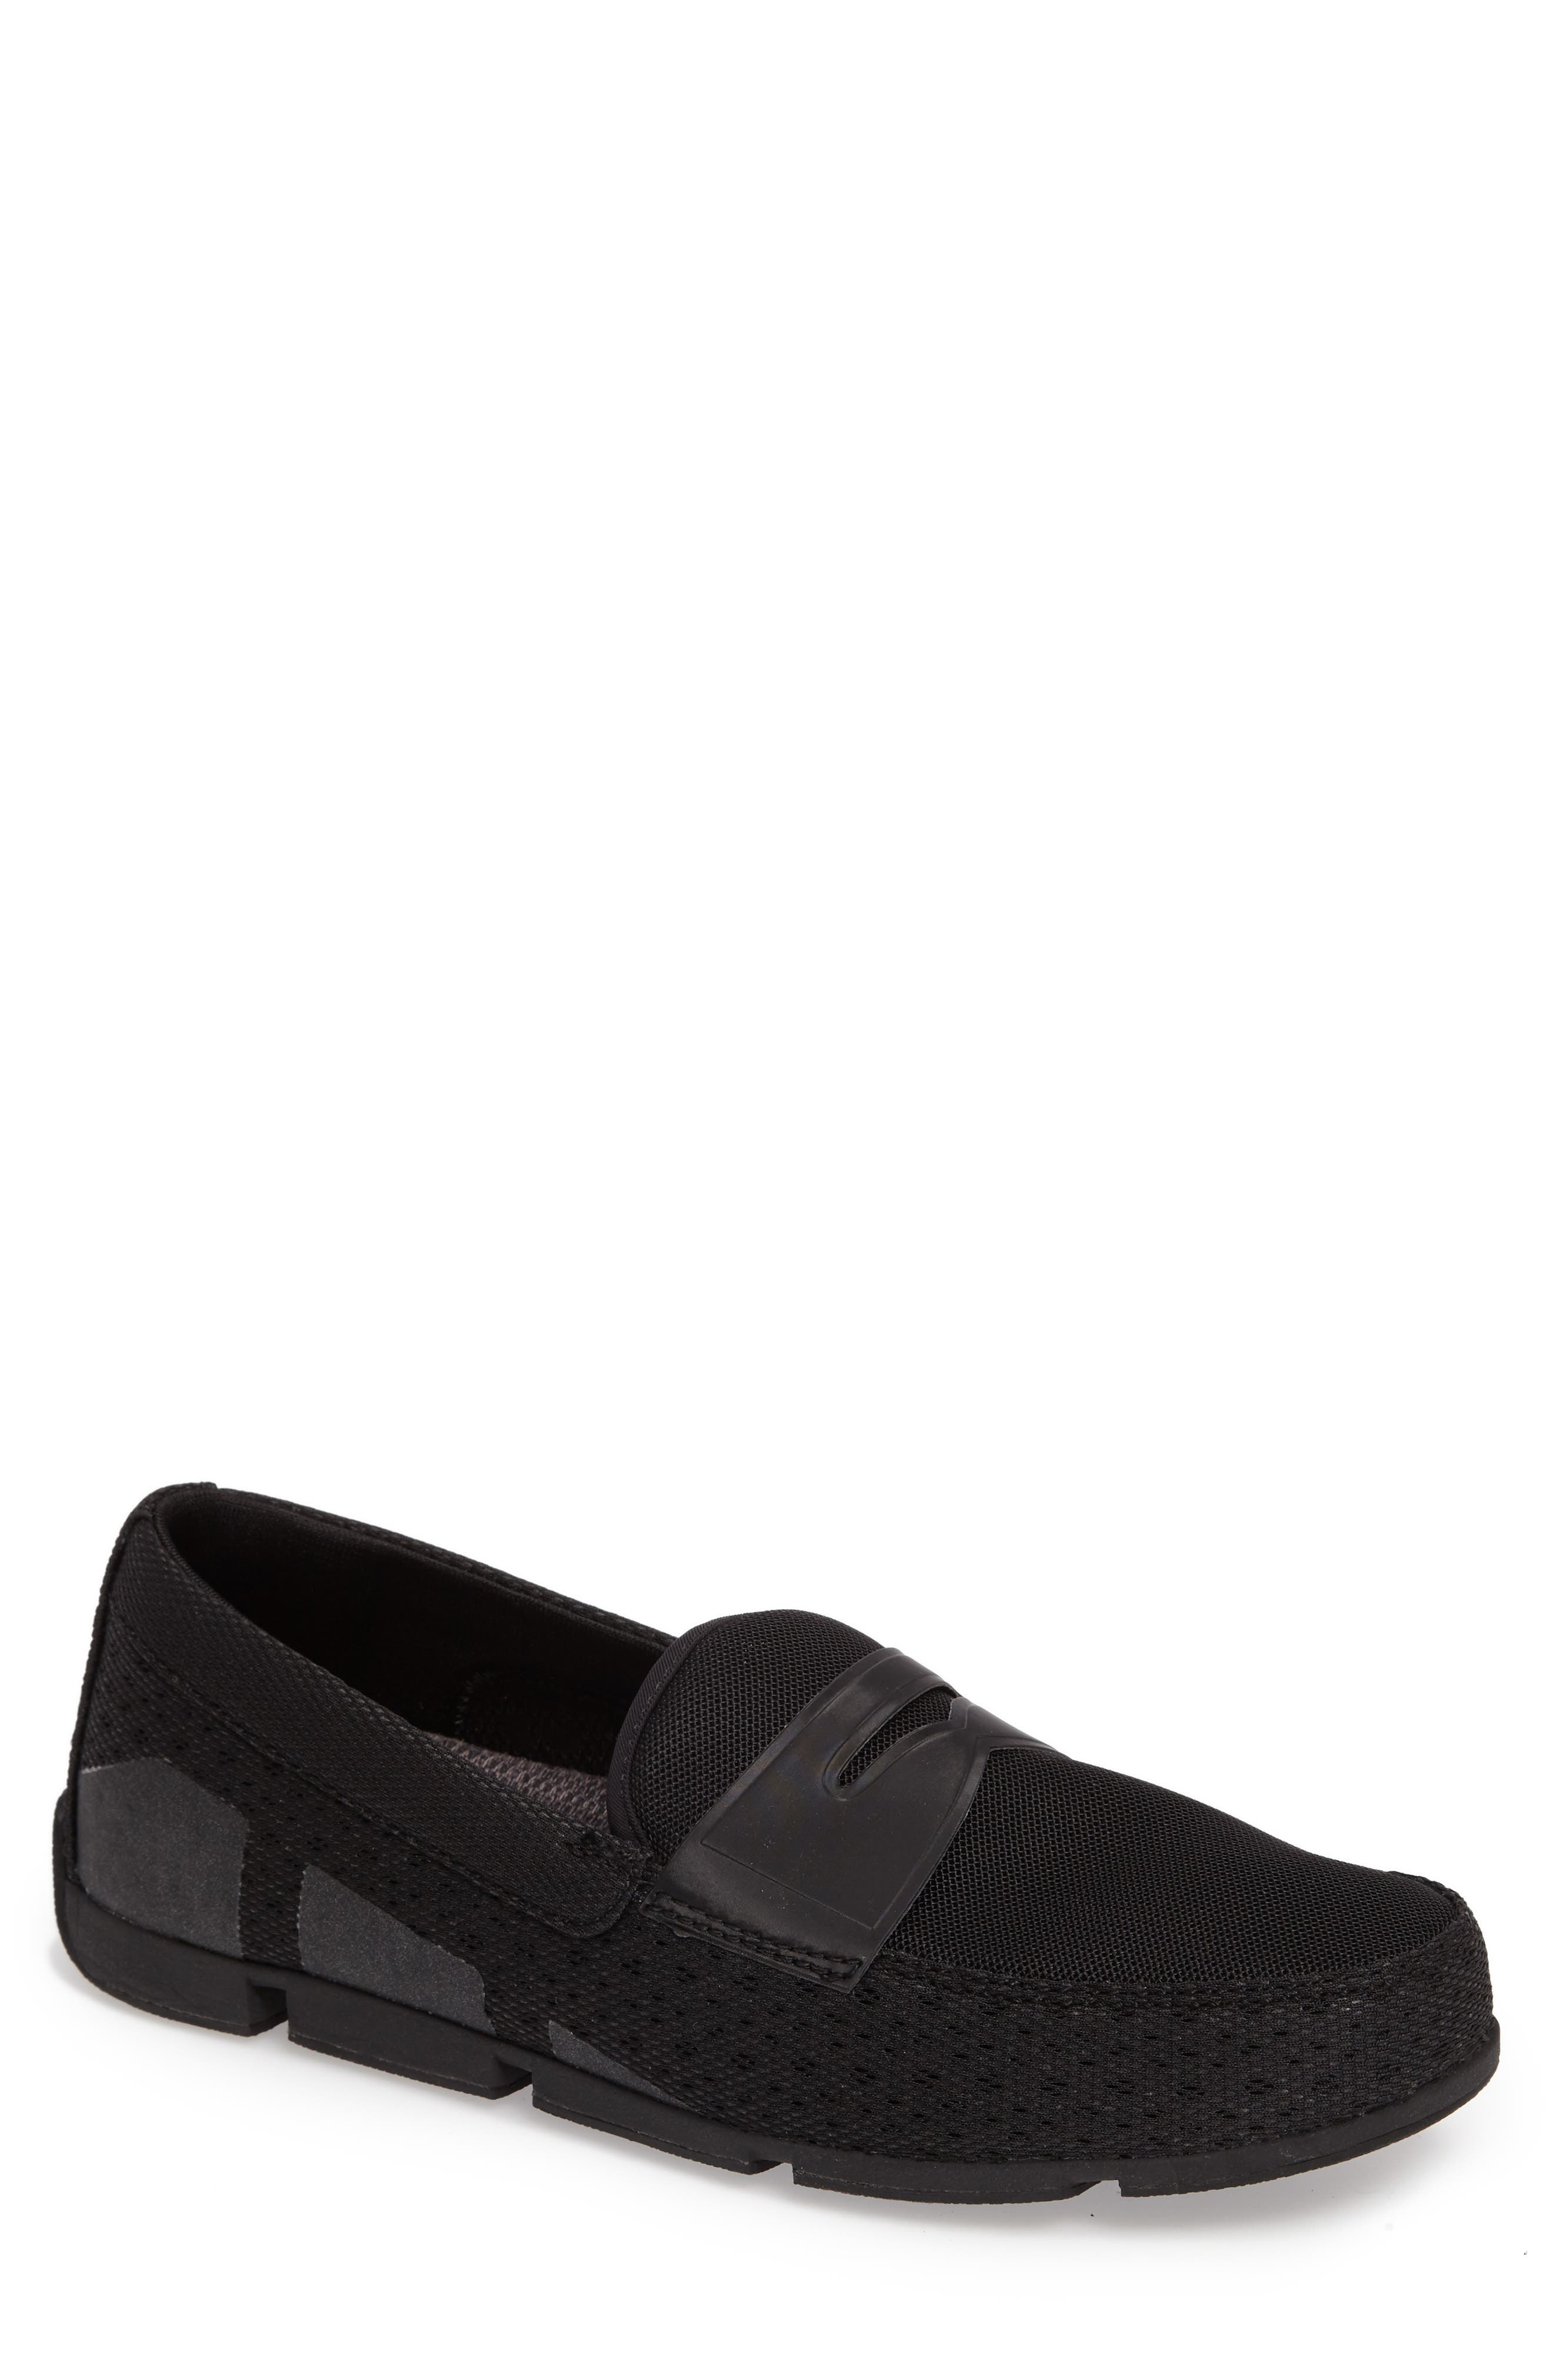 Breeze Penny Loafer,                         Main,                         color,